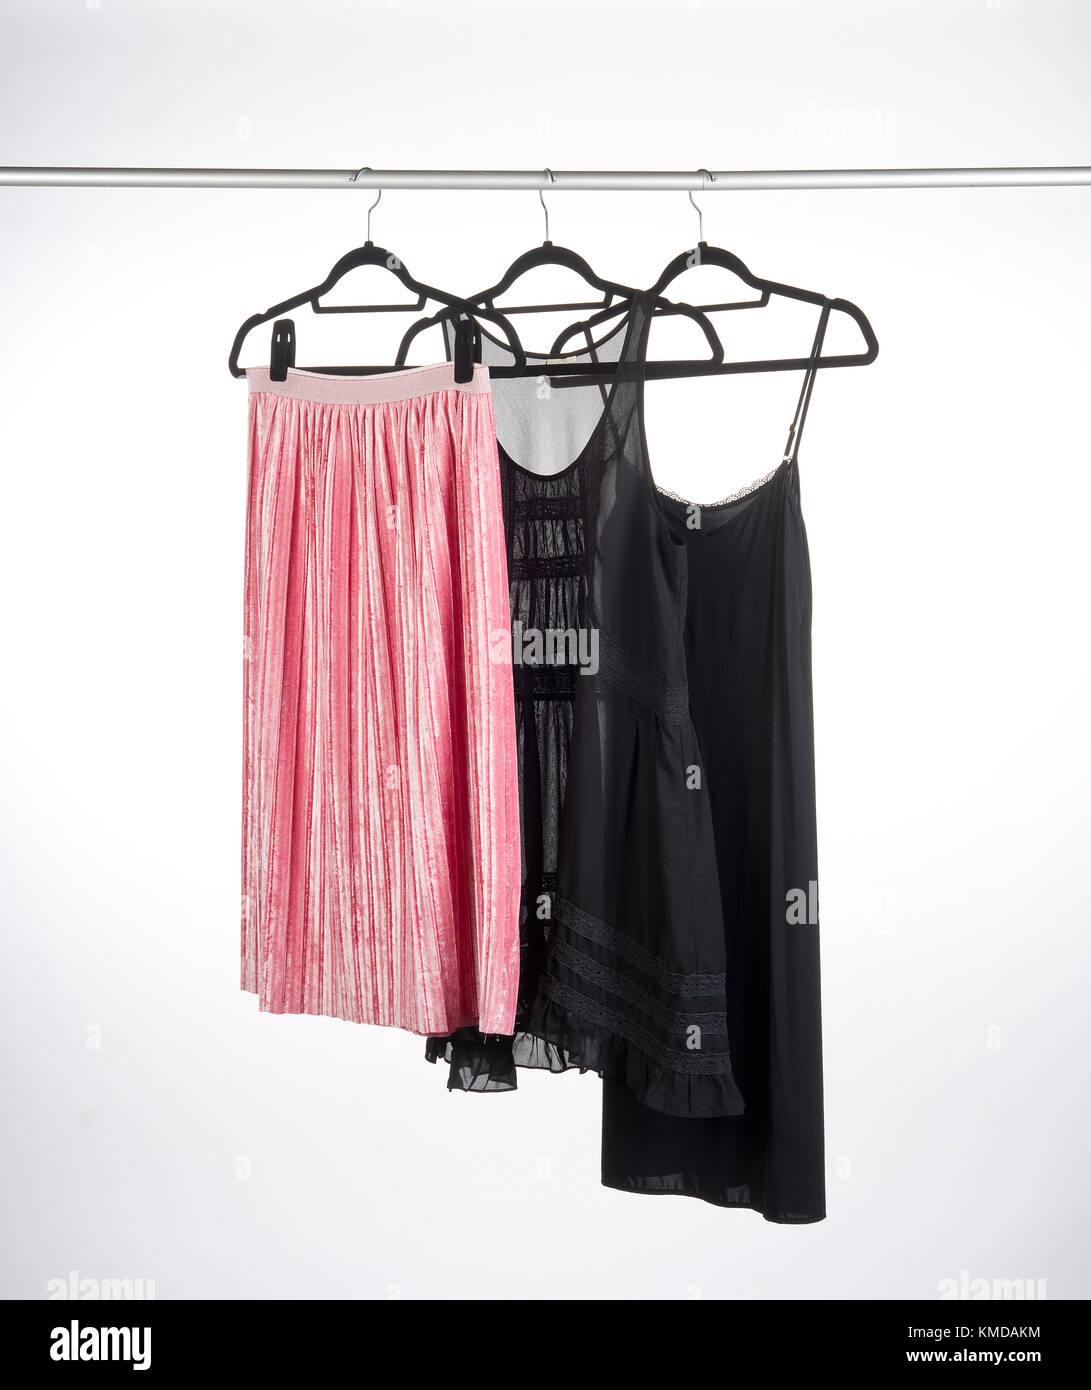 clothes on hangers, hanging on a clothes rail. - Stock Image